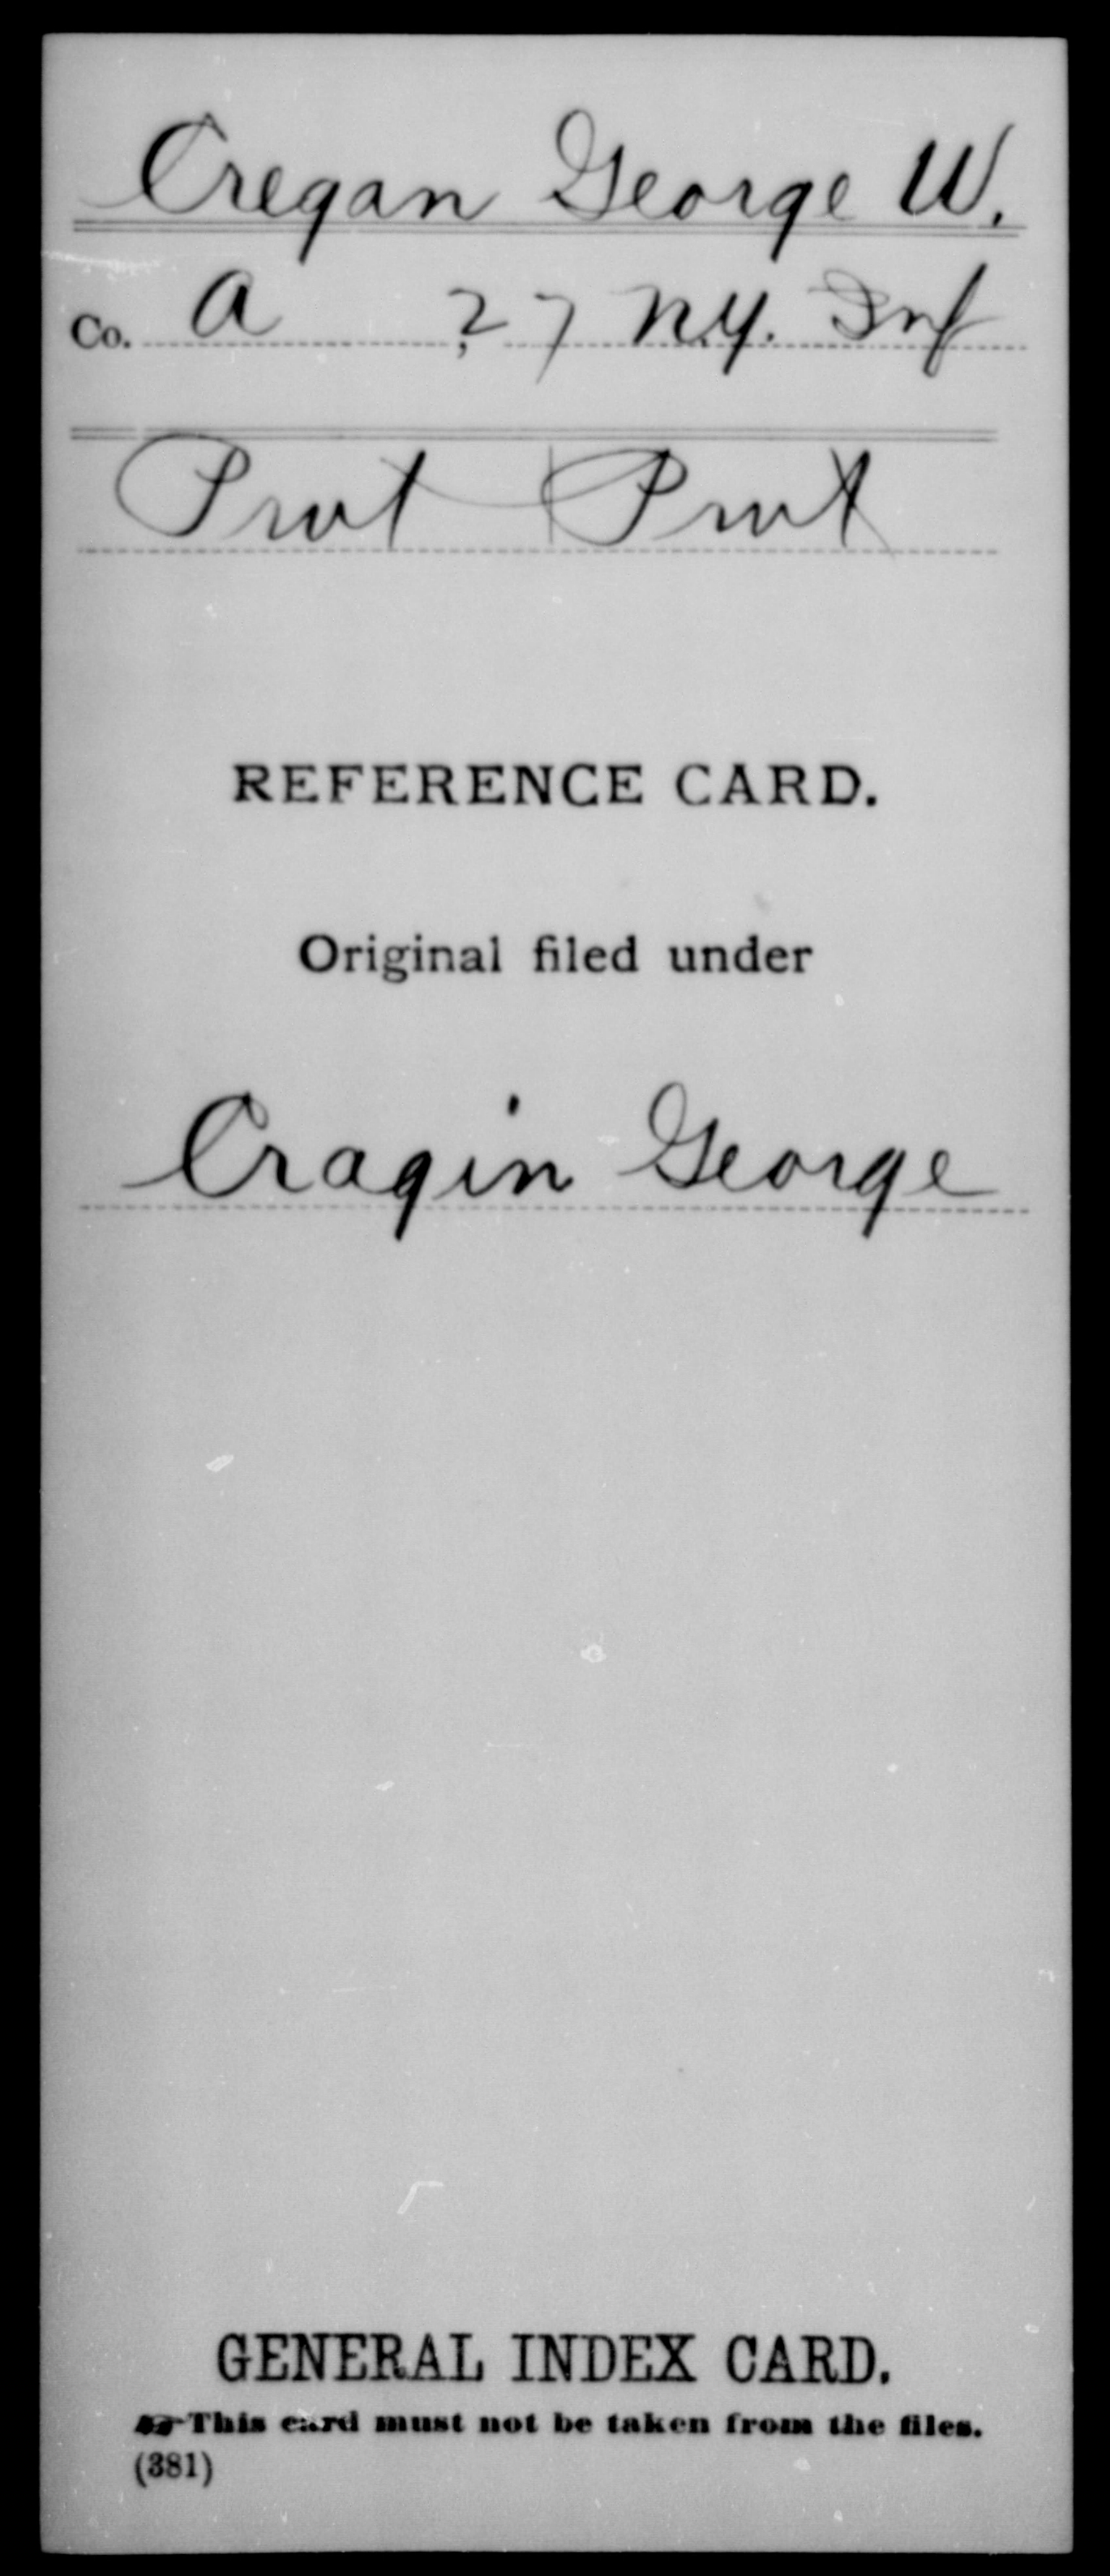 [New York] Cregan, George W - Unit: 27th Infantry, Company: A - Enlistment Rank: Pvt, Discharge Rank: Pvt